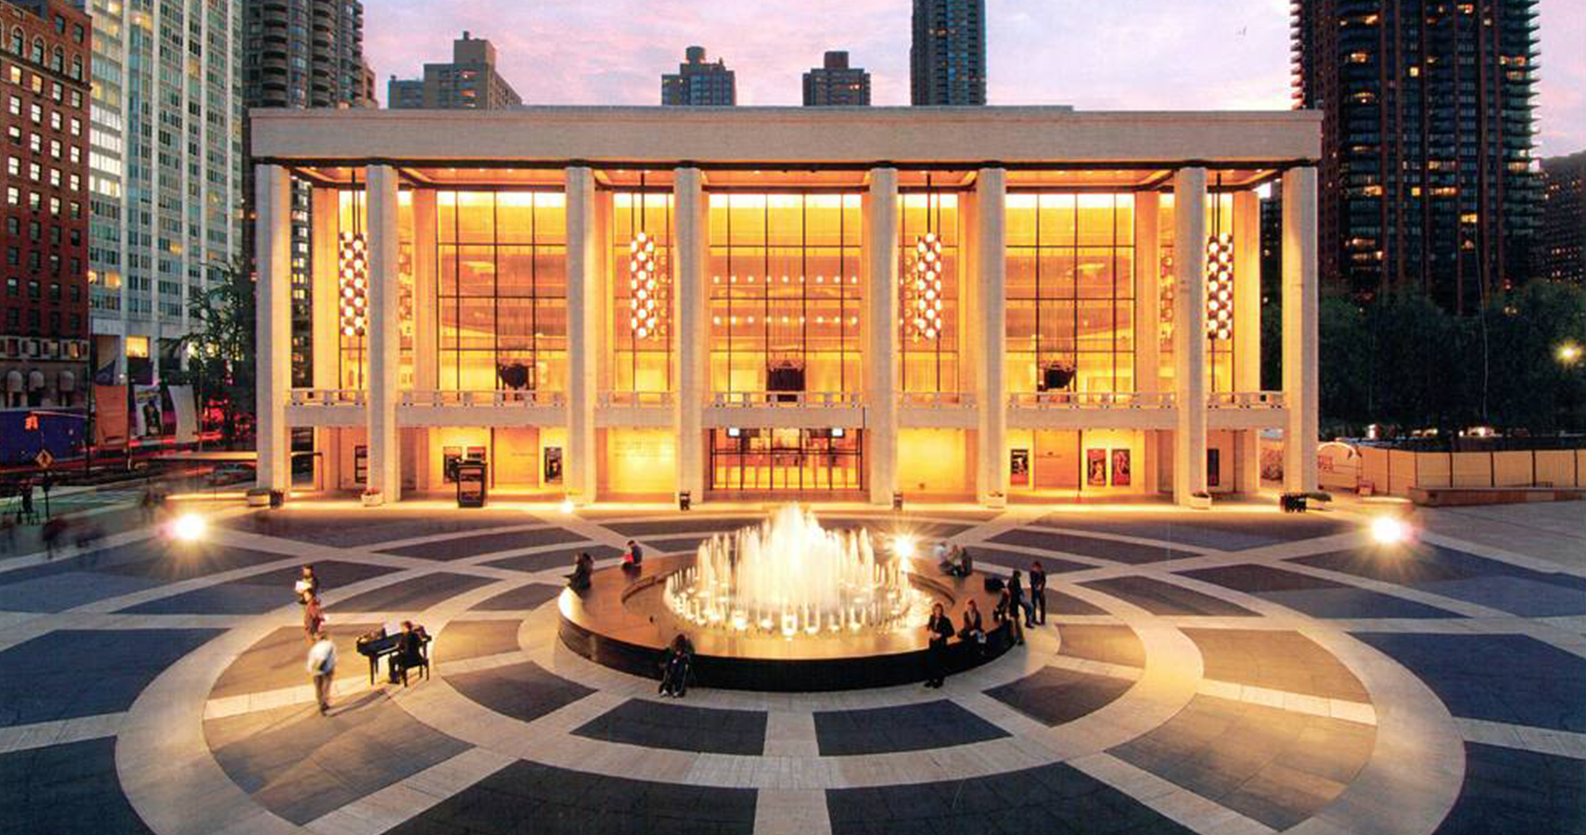 The David Koch Theater in New York, where the YAGP Finals will be held